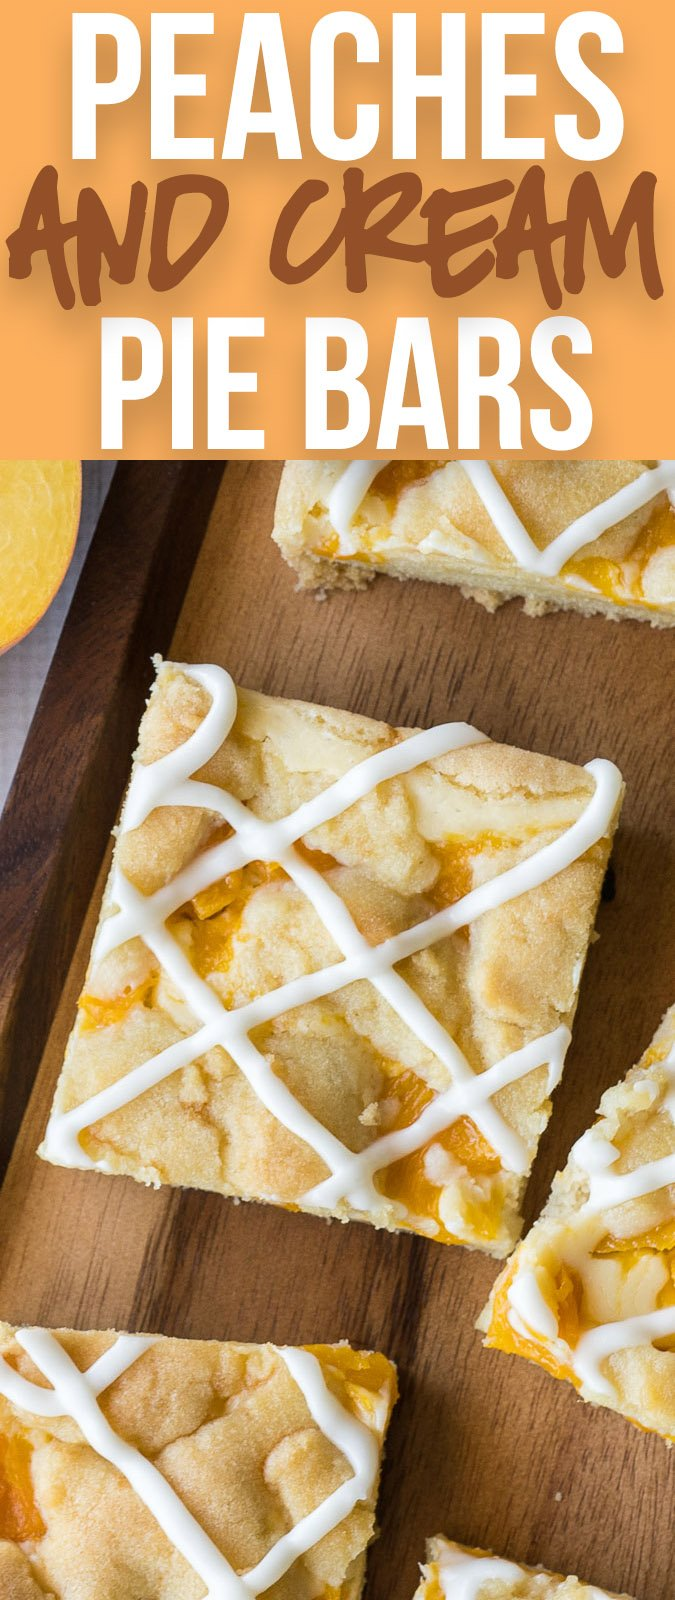 These Peaches and Cream Pie Bars are an easy dessert recipe that's perfect for a party or potluck!